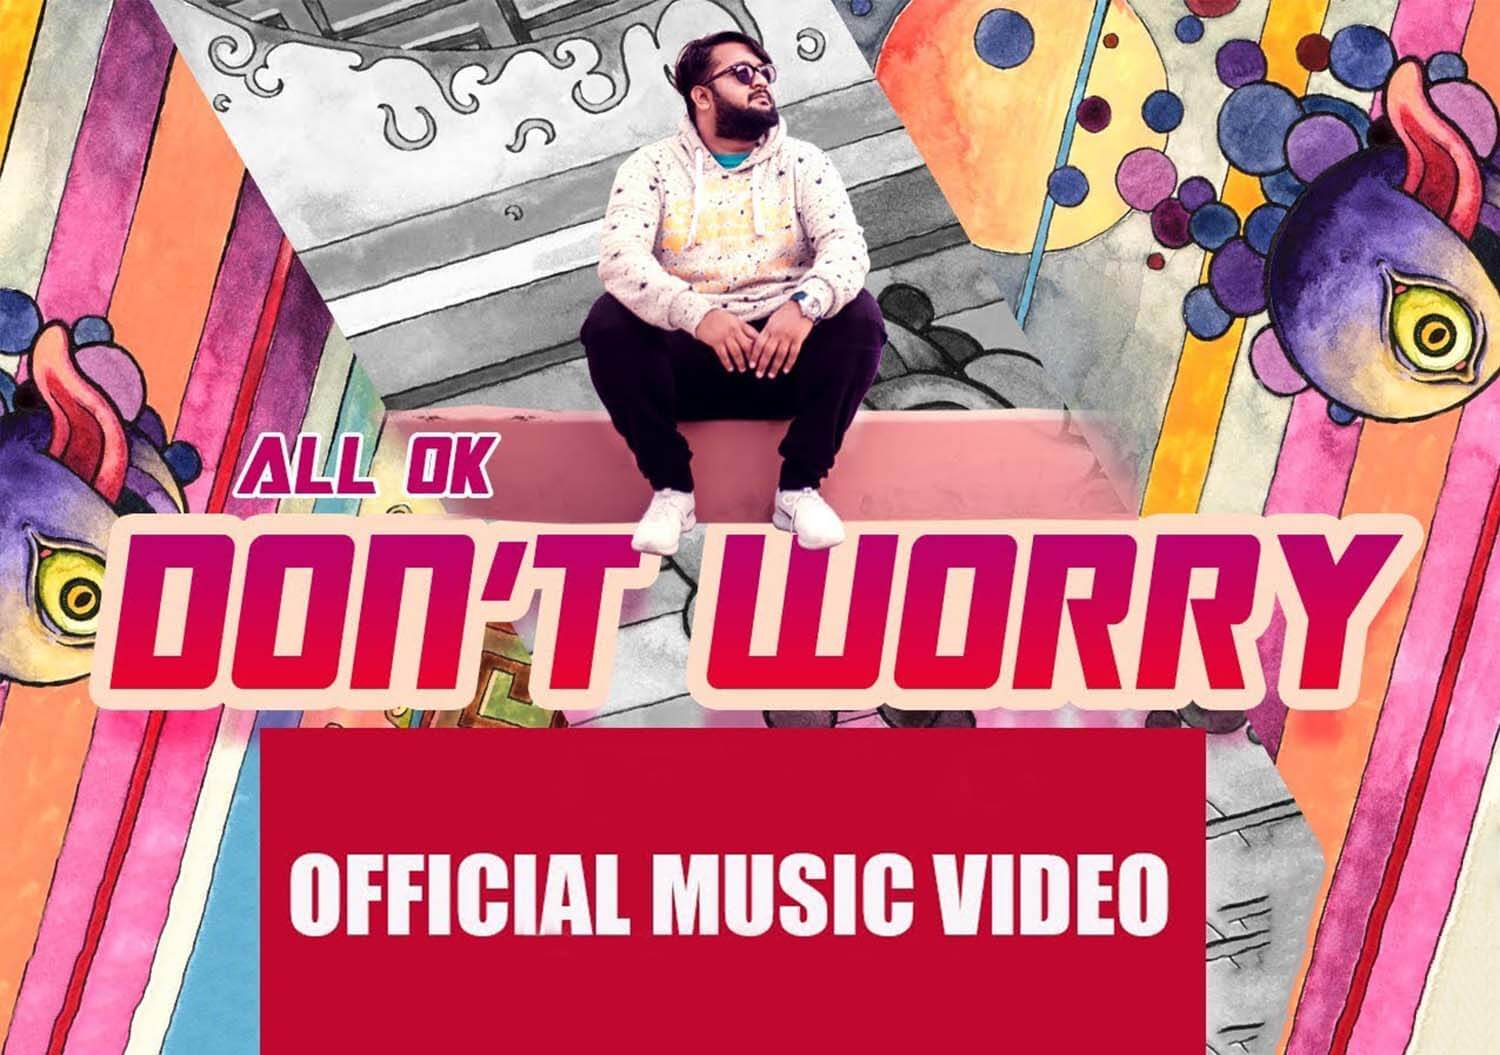 Alok Babu Don't Worry Song Is An Inspiring Number